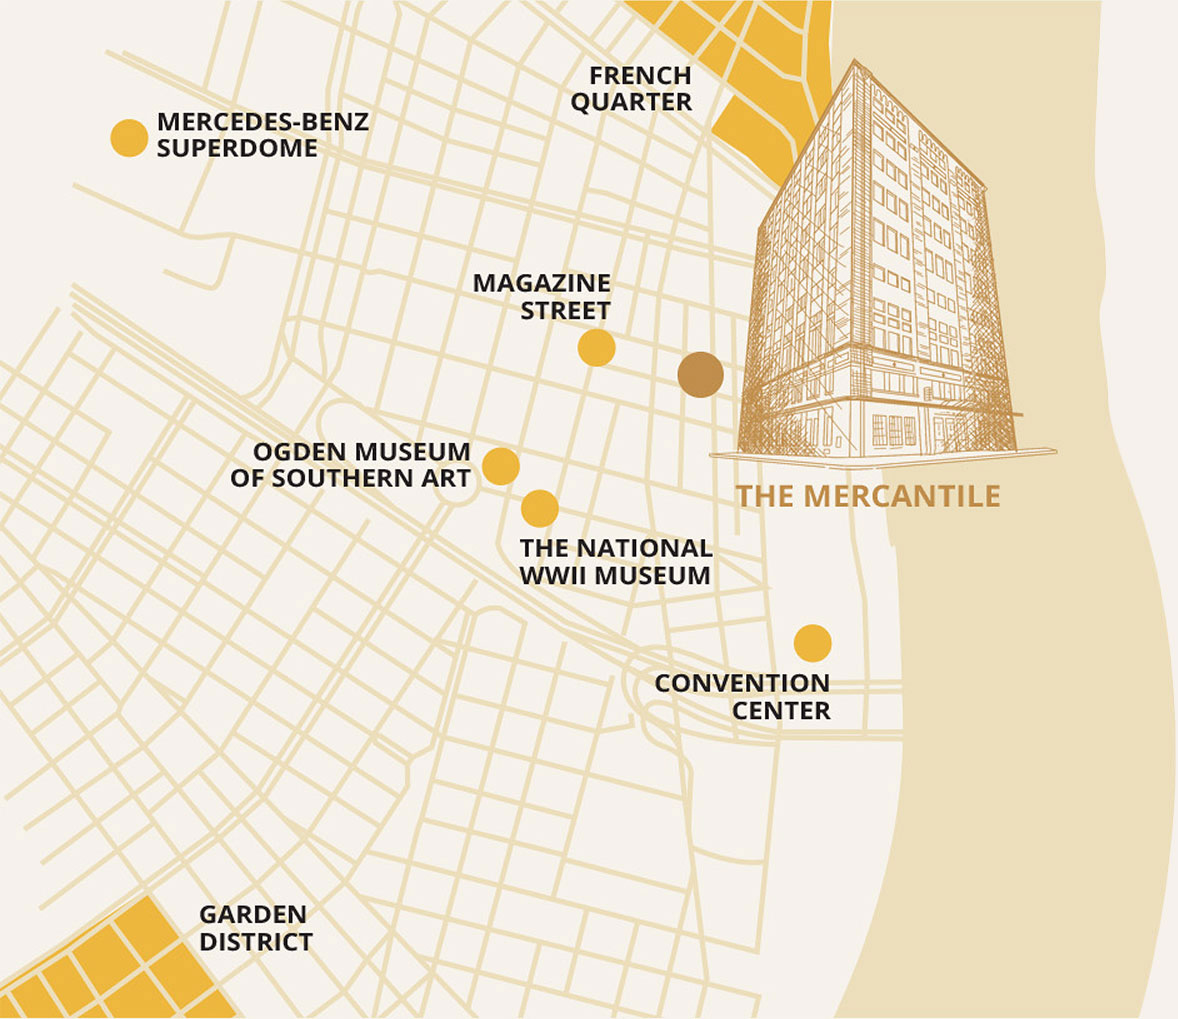 Home - The Mercantile Hotel Map French Quarter Hotels on midtown manhattan hotels map, french quarter district map, large french quarter map, hotels near grand canyon map, french quarter street map, riverside hotels map, pittsburgh hotels map, french quarter property map, french quarter interactive map, new orleans hotels map, michigan avenue hotels map, st. martin french quarter map, downtown cleveland hotels map, charleston hotels map, avondale hotels map, denver hotels map, french quarter restaurant map, fisherman's wharf hotels map, french quarter walking map, best french quarter map,